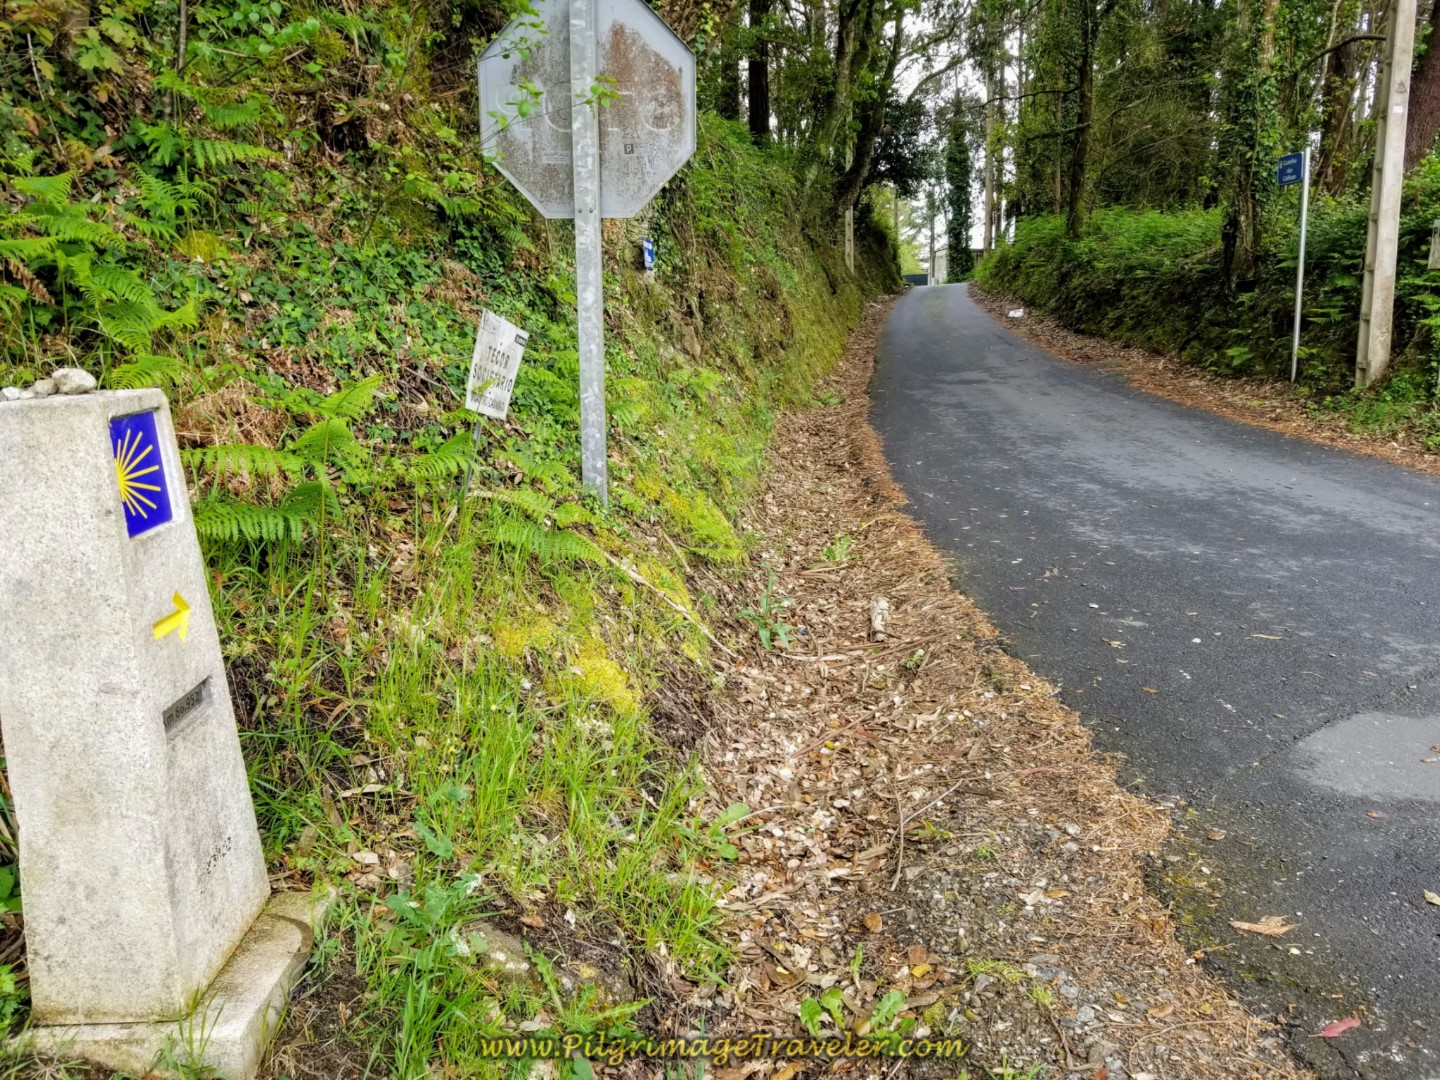 80.952 Kilometer Marker on the Camiño do Cadivas on day two of the English Way